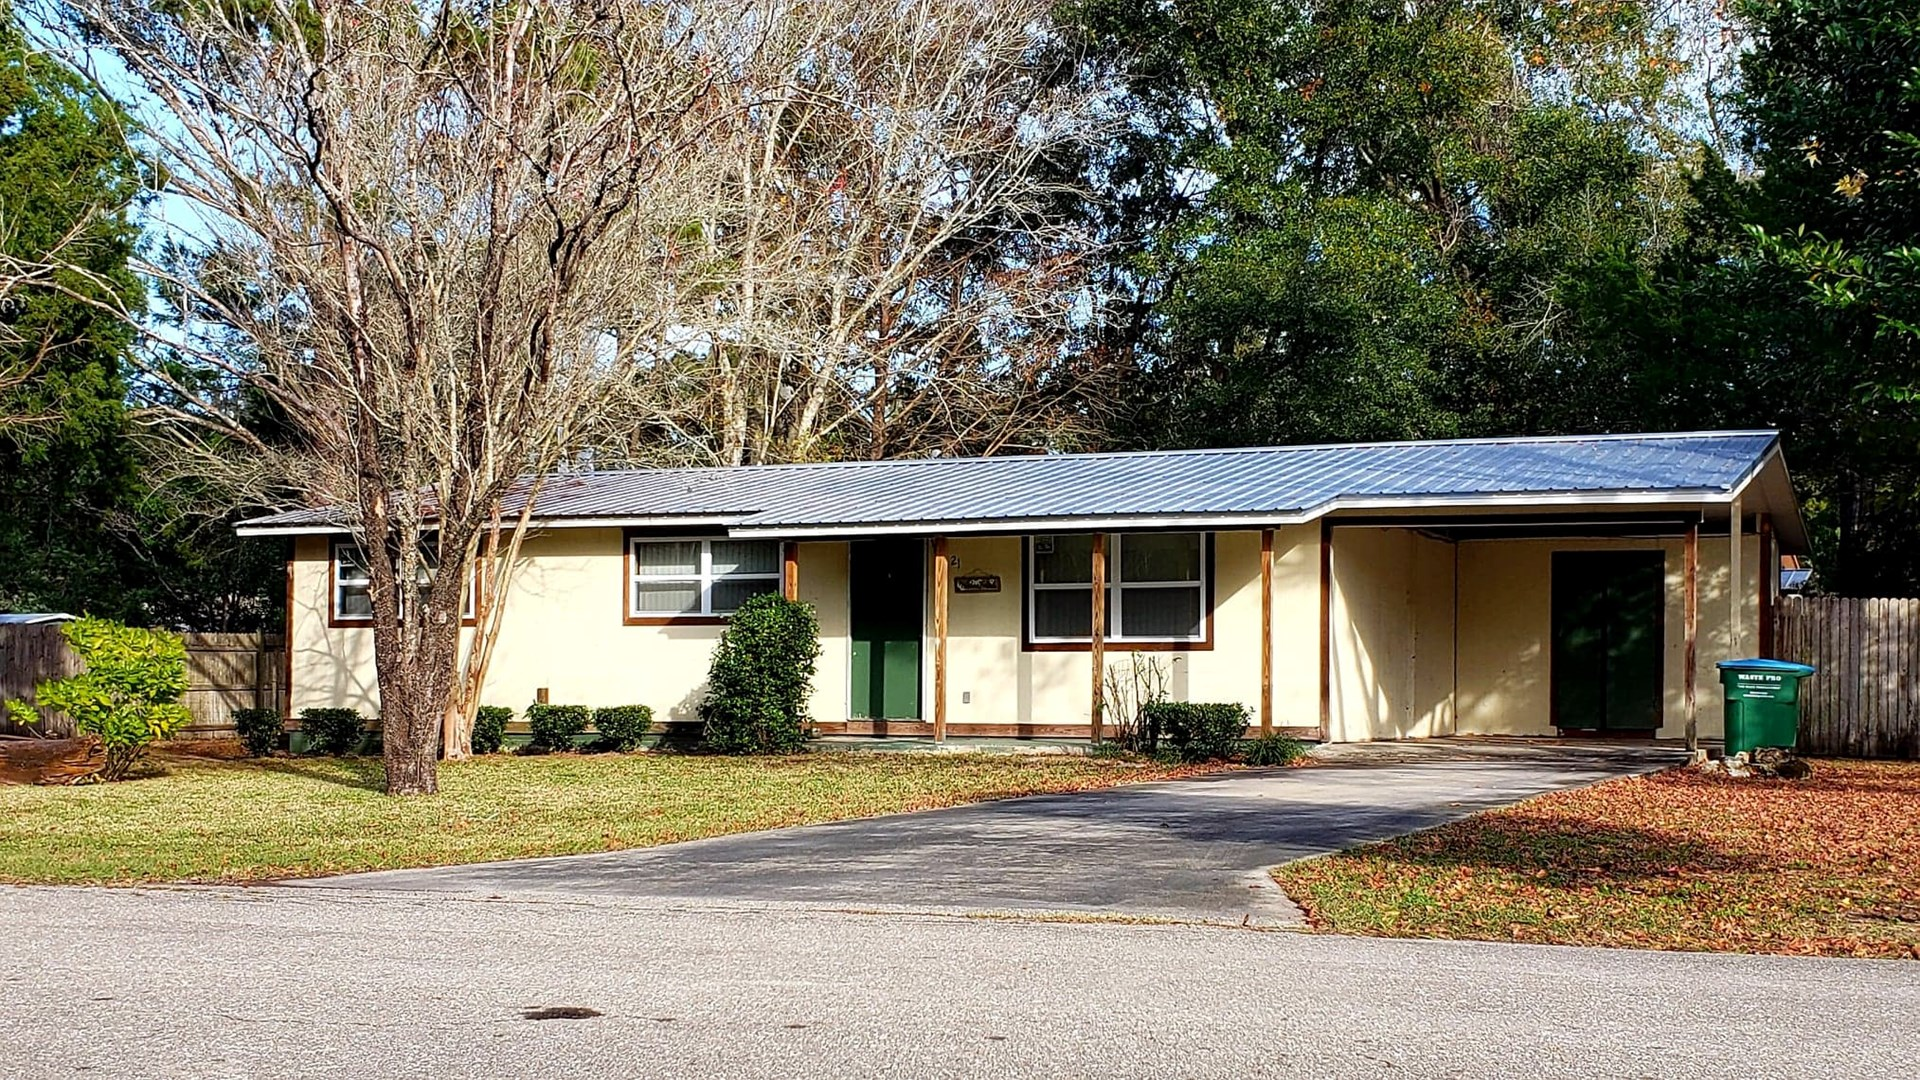 3 BR in the heart of Chiefland, FL